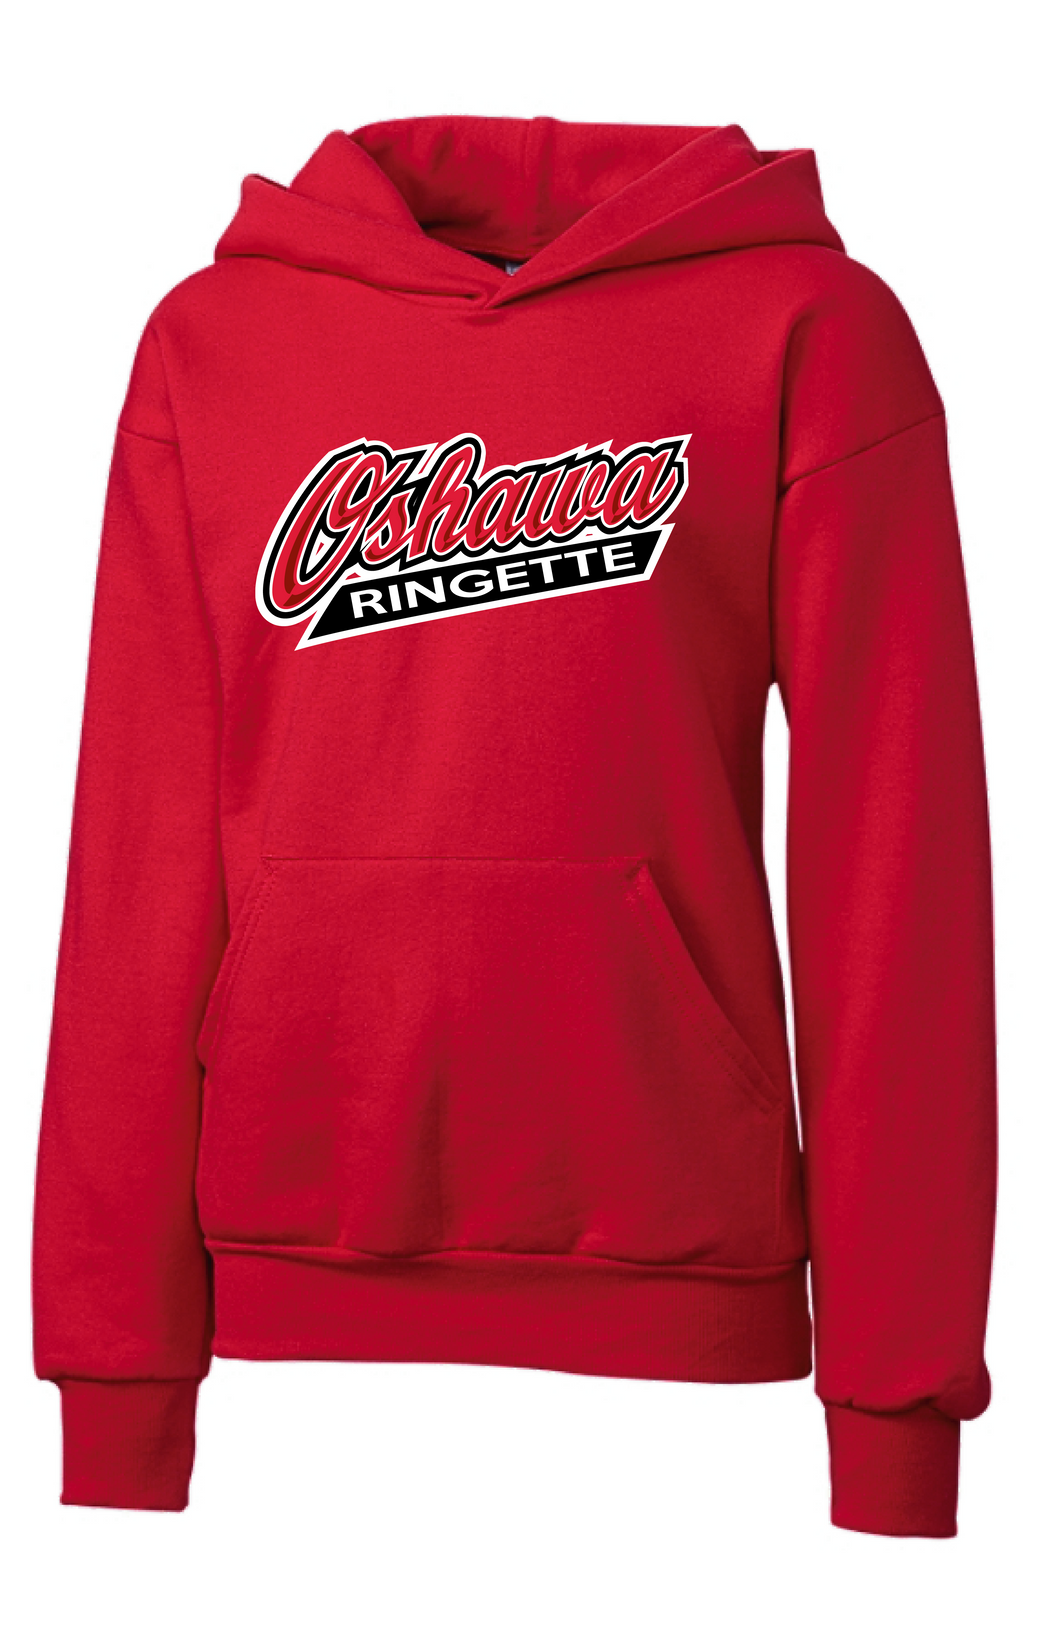 Oshawa Ringette Game Day Youth Hoodie